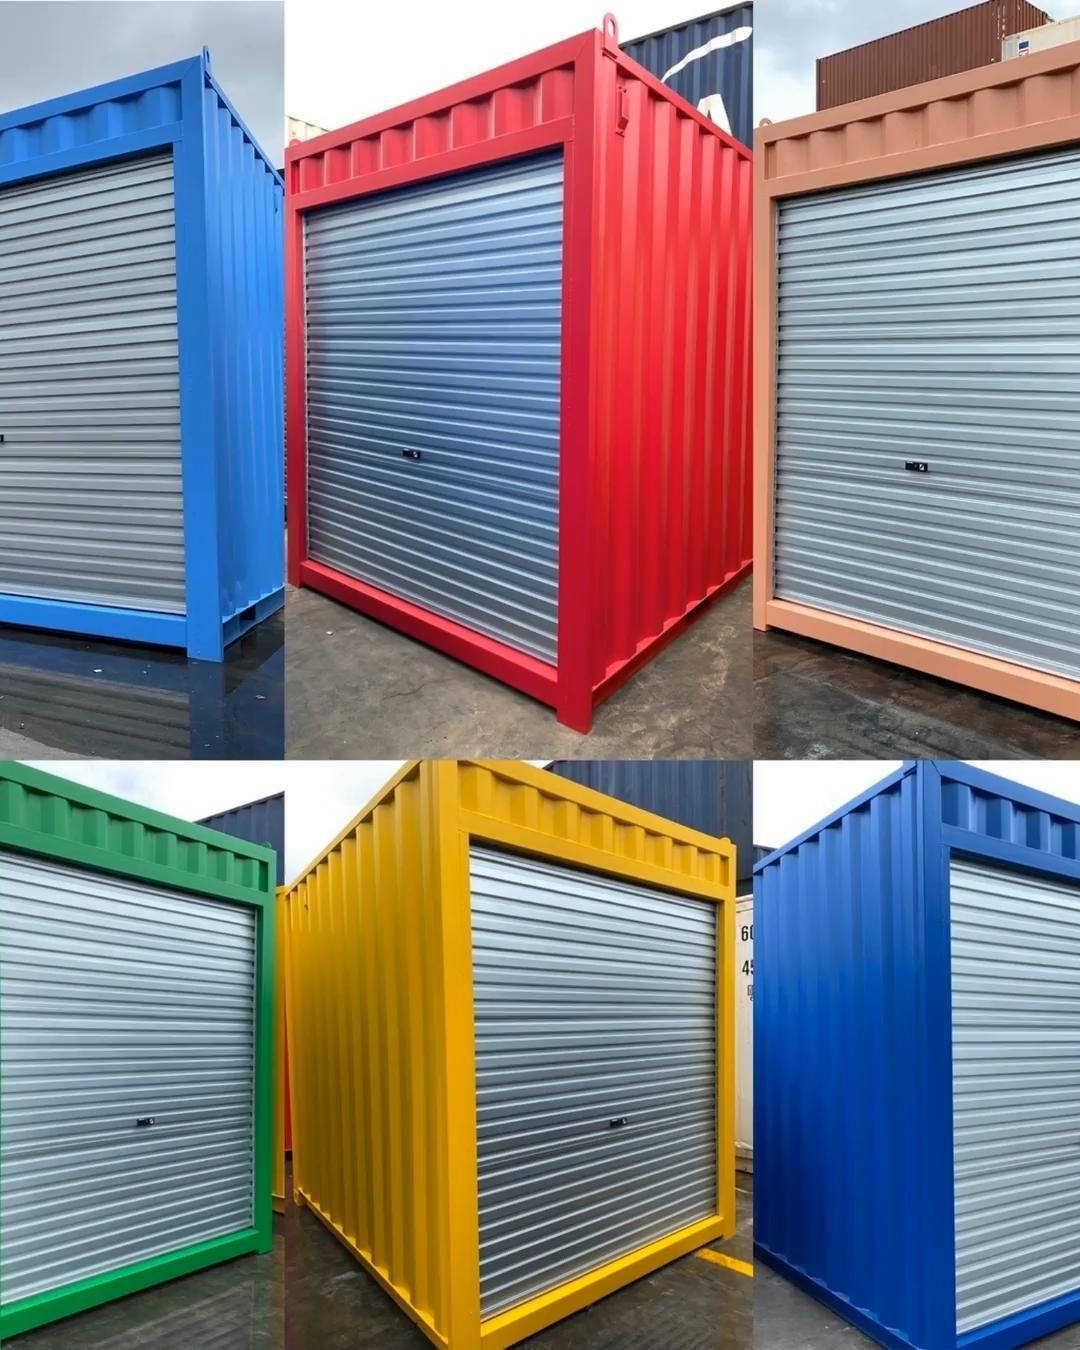 10ft High Cube Shipping Container Project Check Out The Bright Colours On A Shipping Container Projec In 2020 Container House Plans Shipping Container Container House